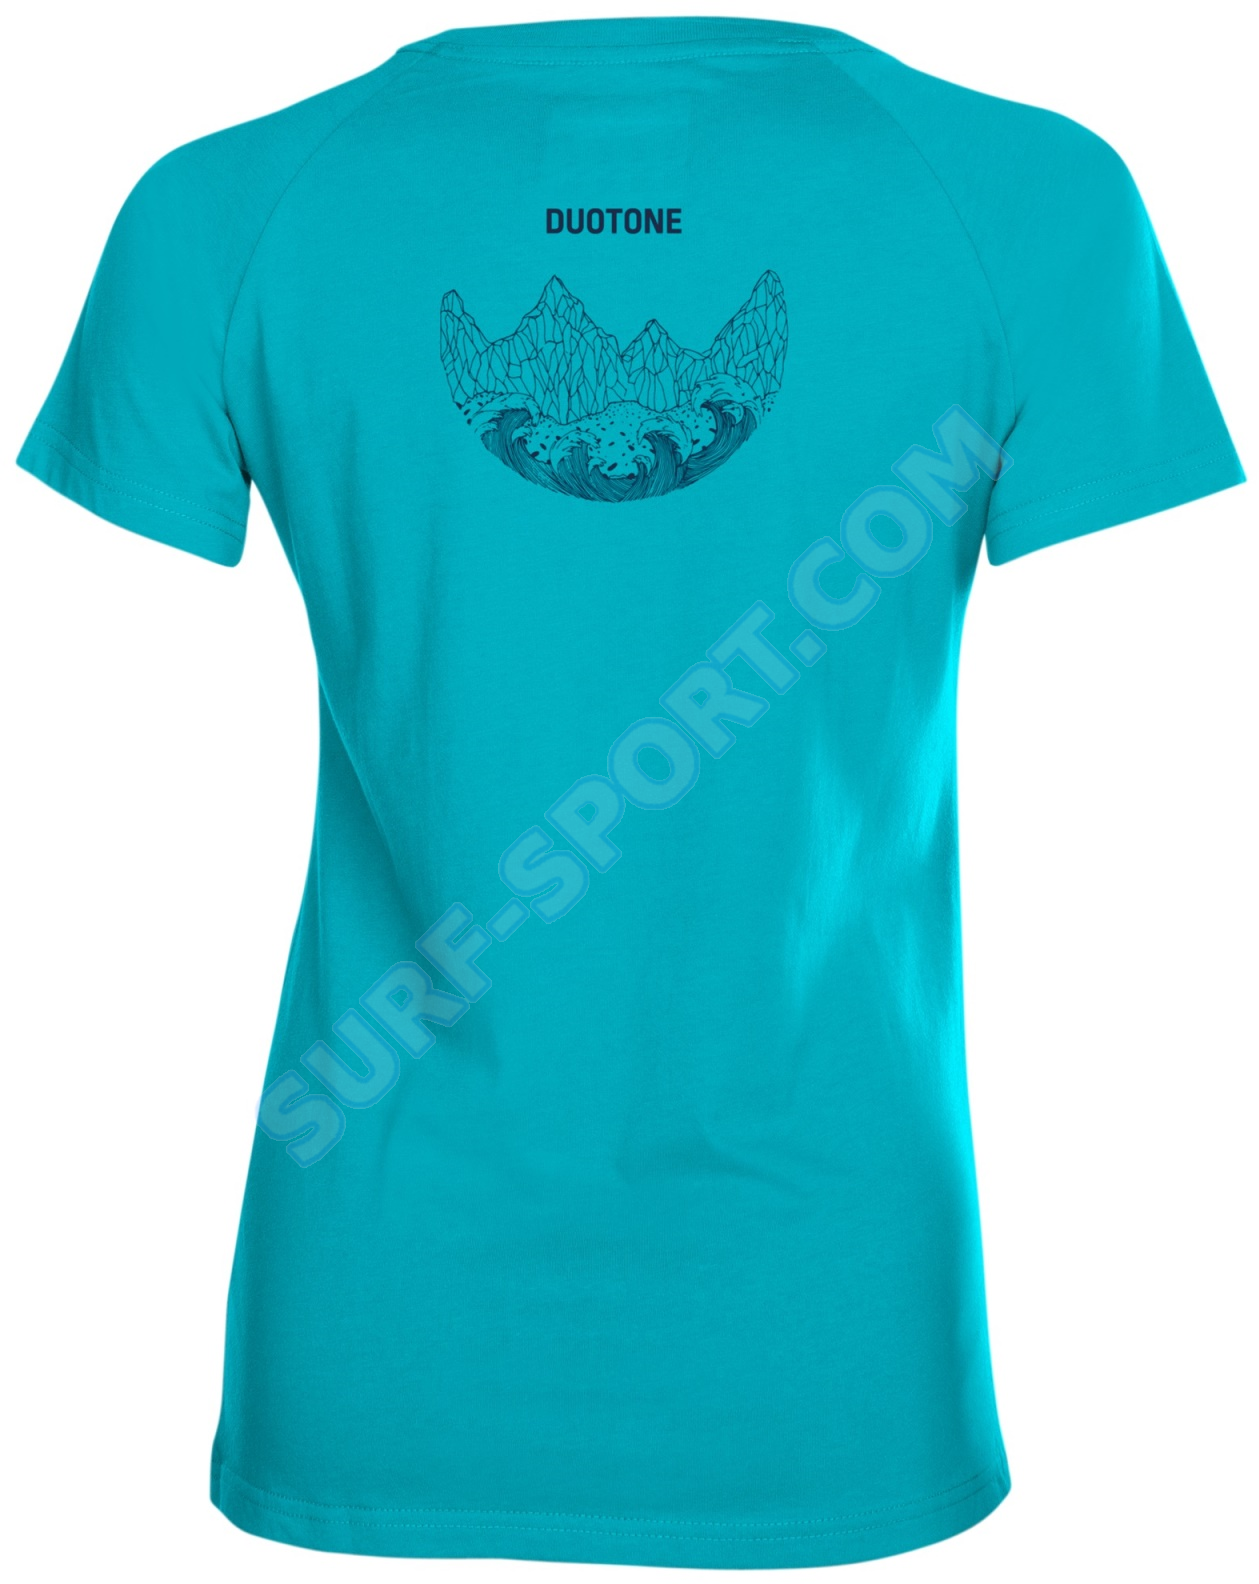 44903-5007_Duotone Tee Waves Women-back 2019.png